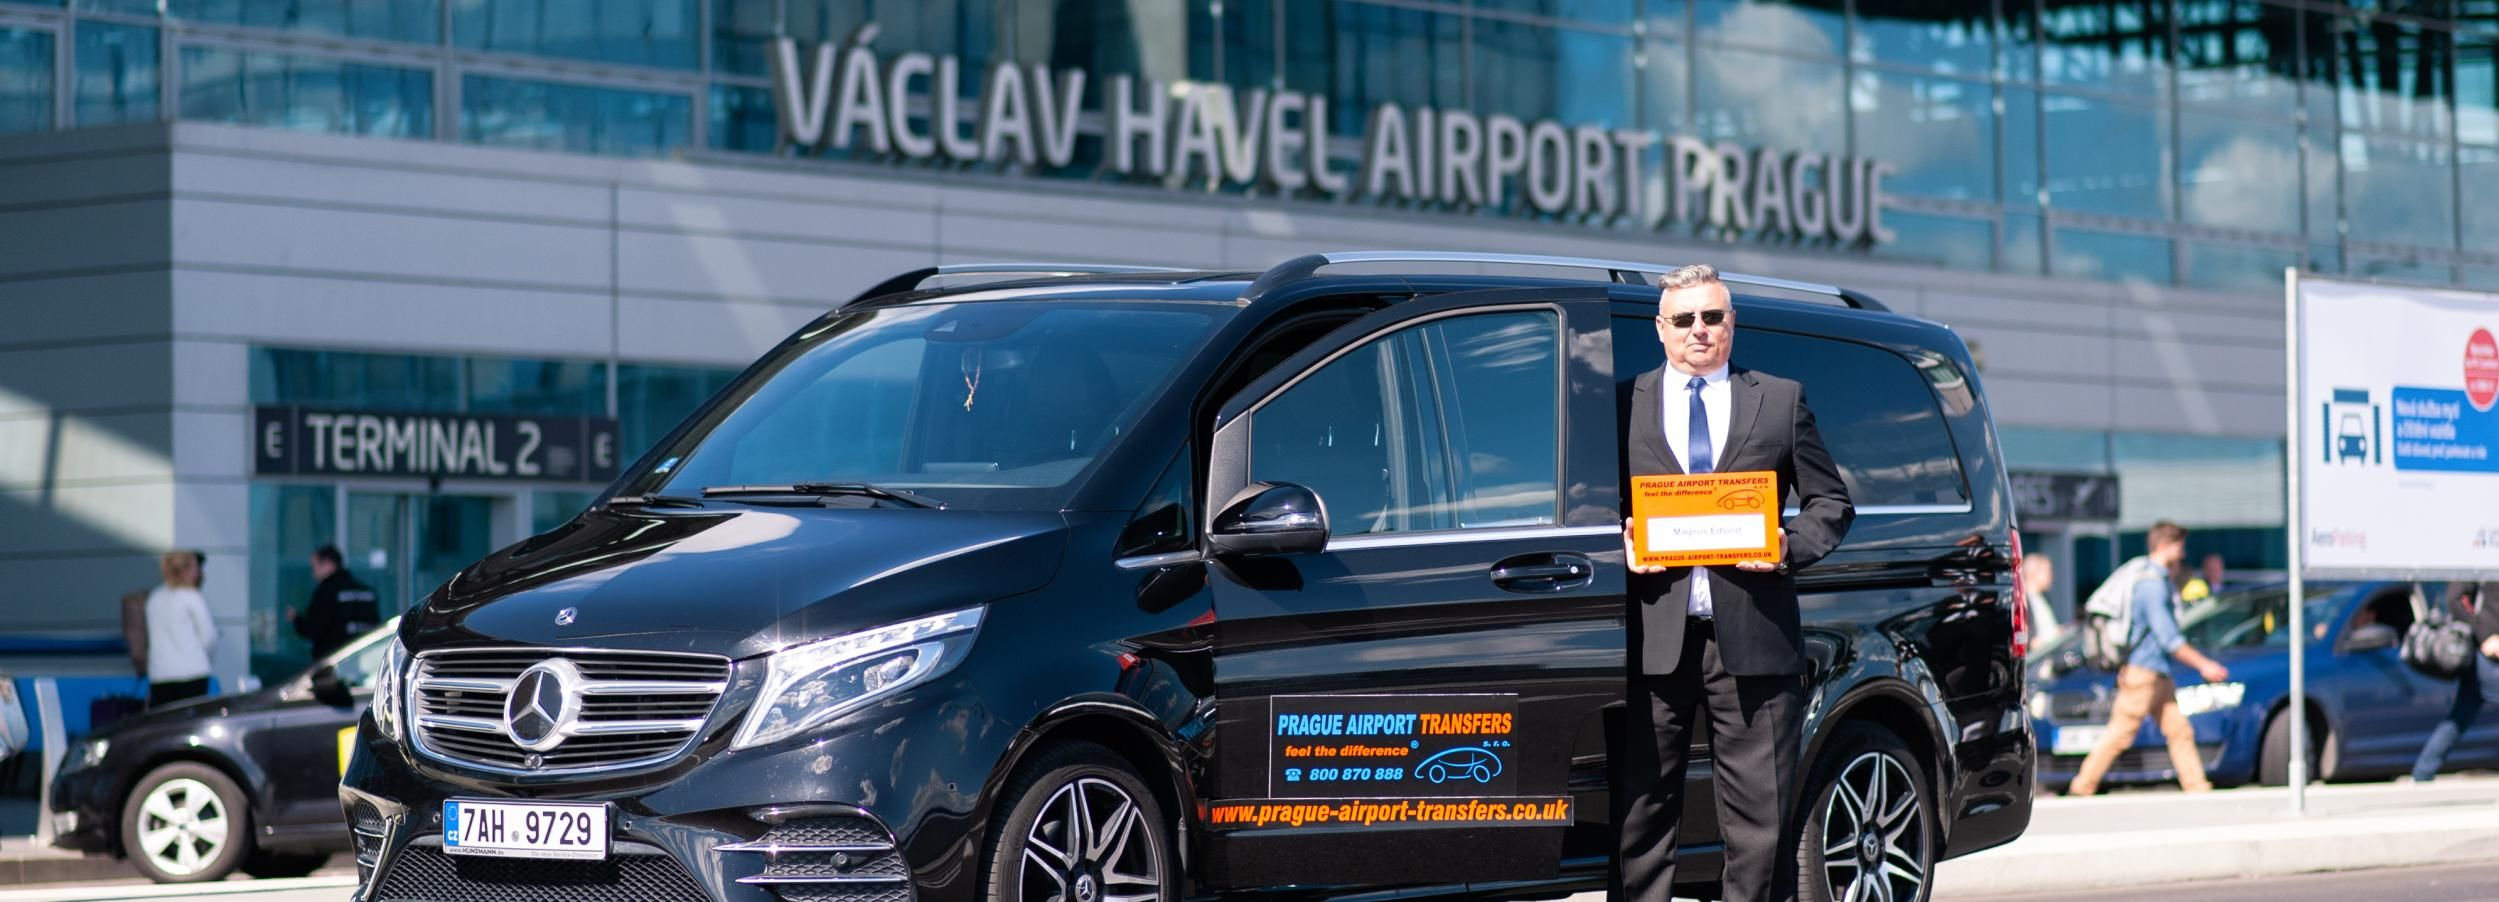 Prague Airport: Shared Shuttle Transfers